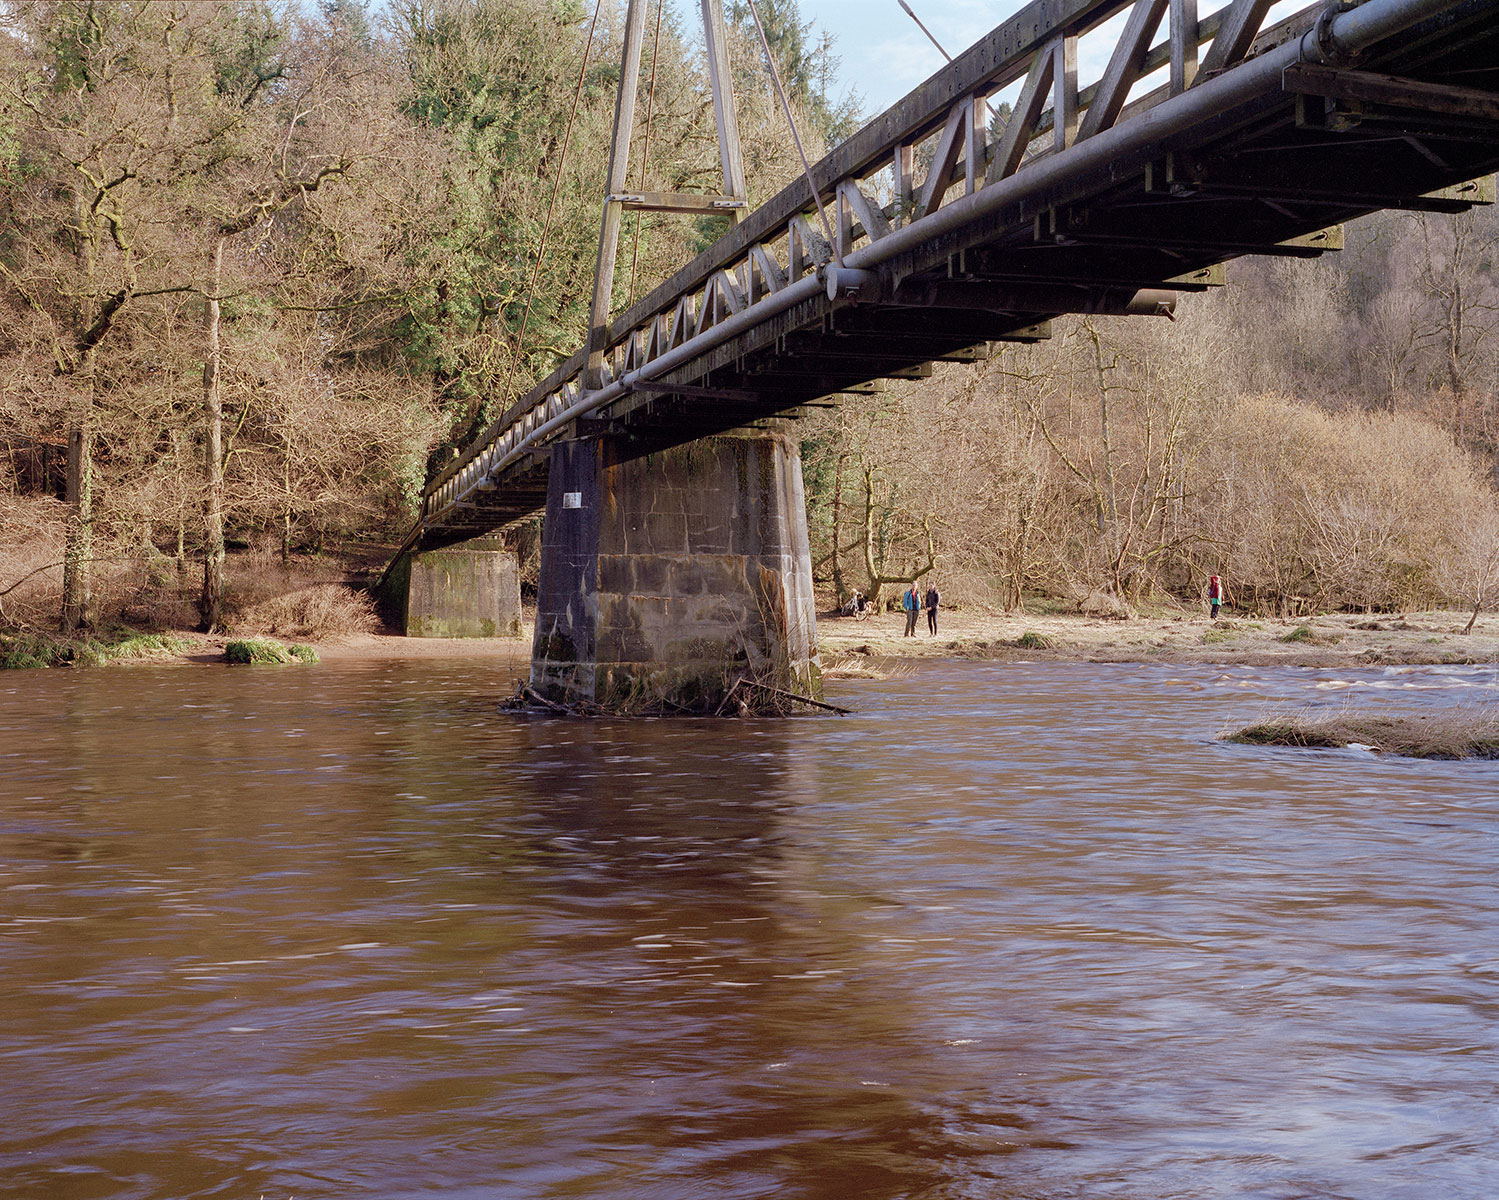 The Green Bridge, Chatelherault Country Park, is easily accessible via the Fairholm route from Larkhall, and connects with the National Cycle Route 74